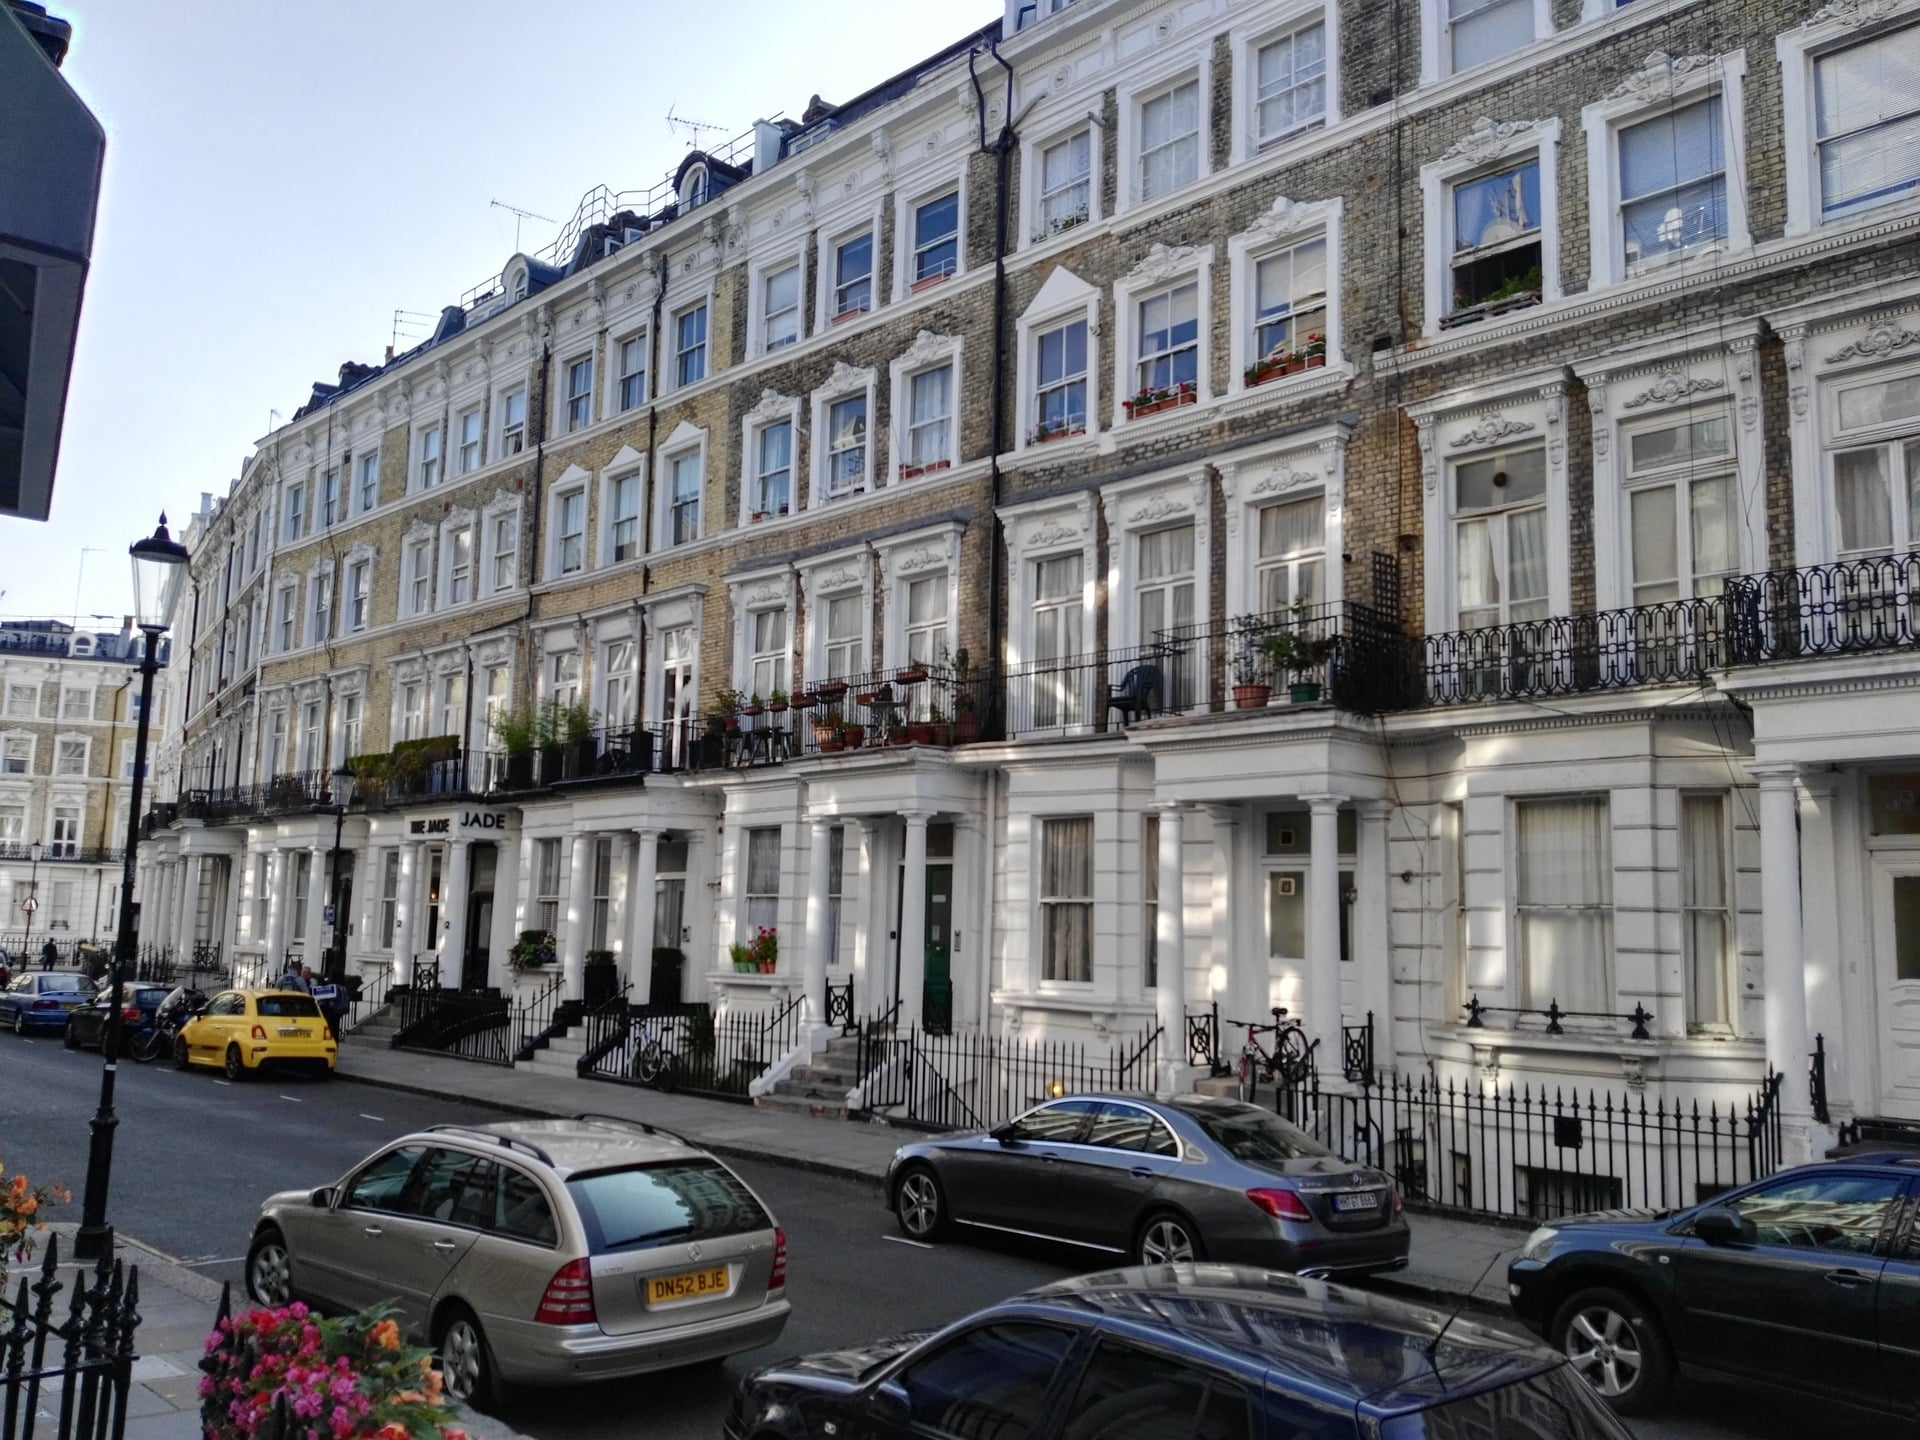 Earl's Court is where to stay in London if you want to stay in a lively residential neighborhood